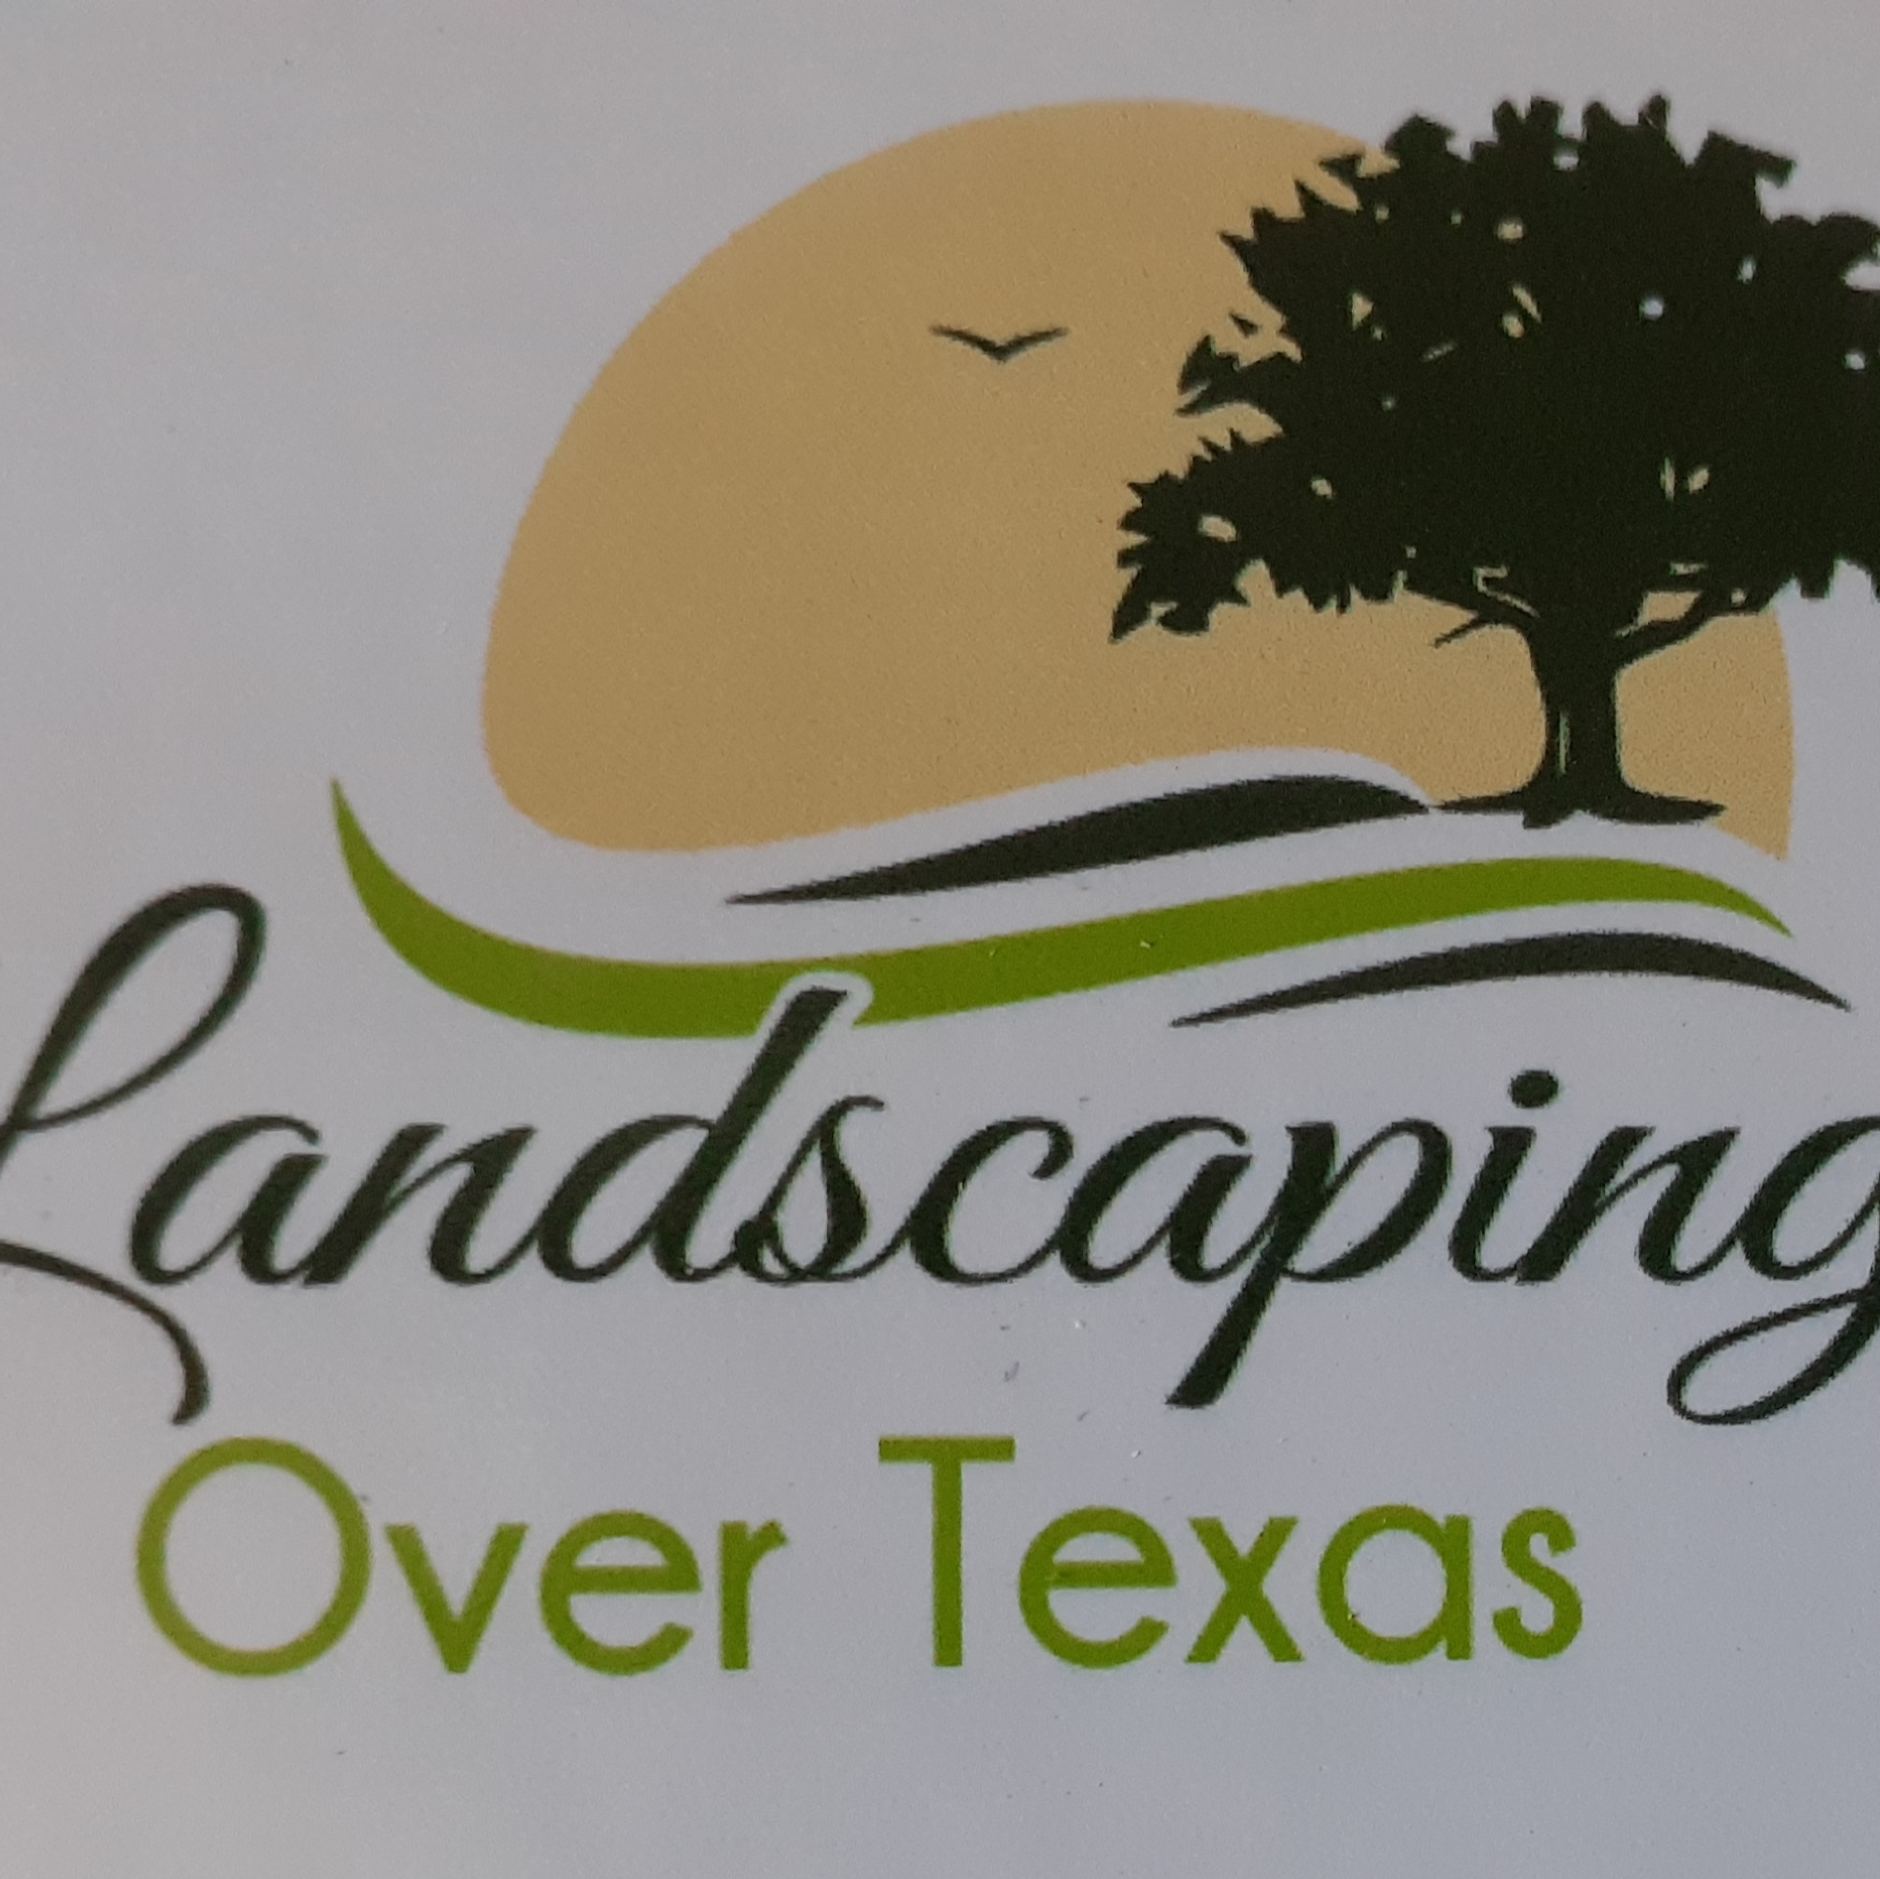 Landscaping Over Texas